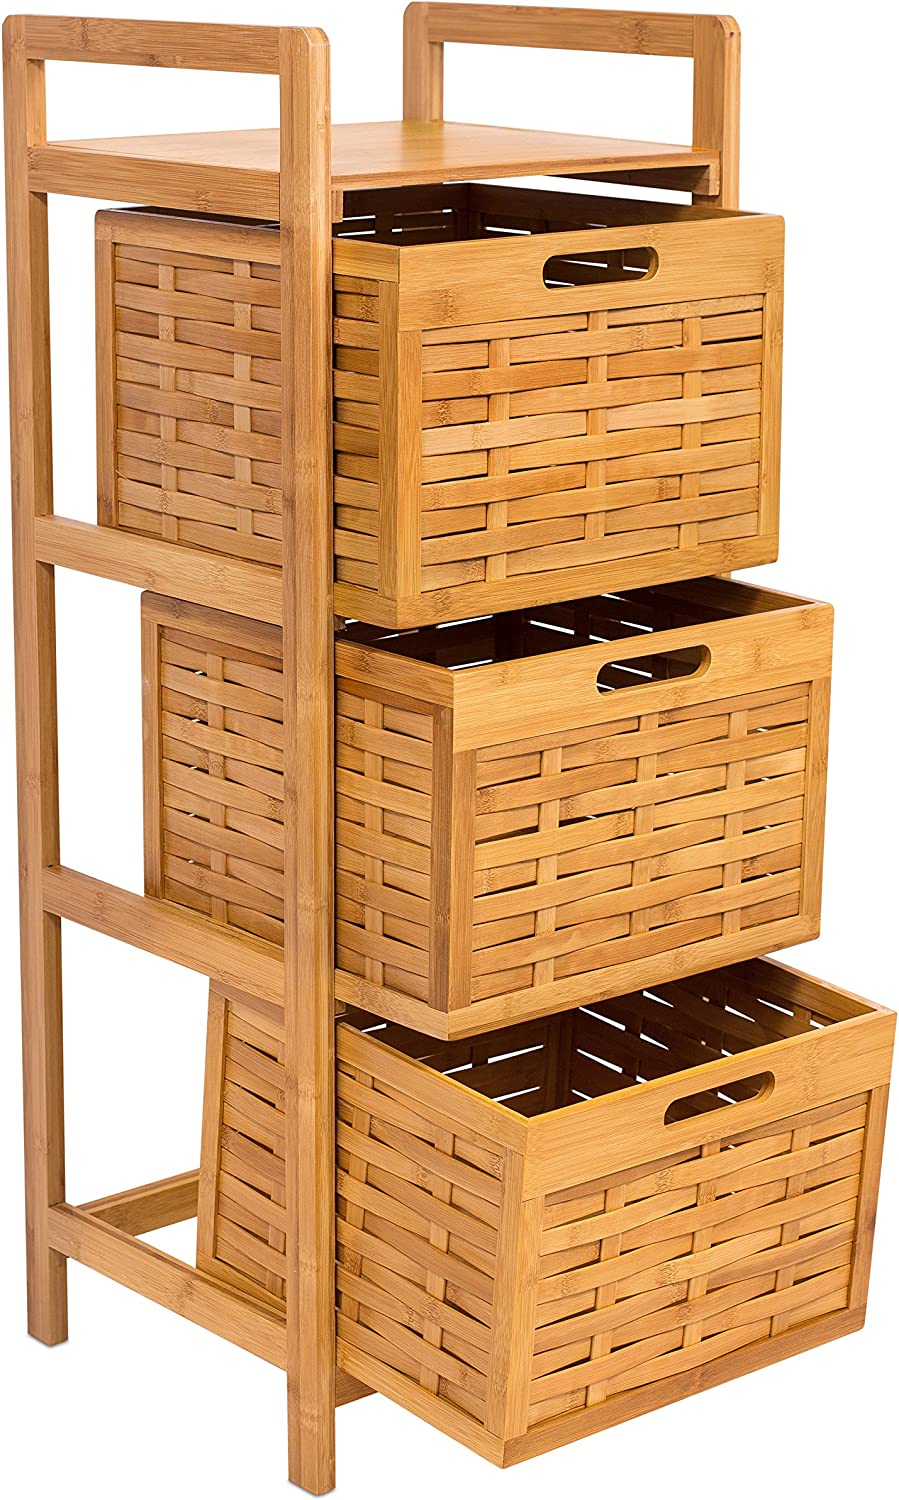 BIRDROCK HOME Storage Tower - Made of Natural Bamboo - Lightweight for Easy Transport - Fully Assembled